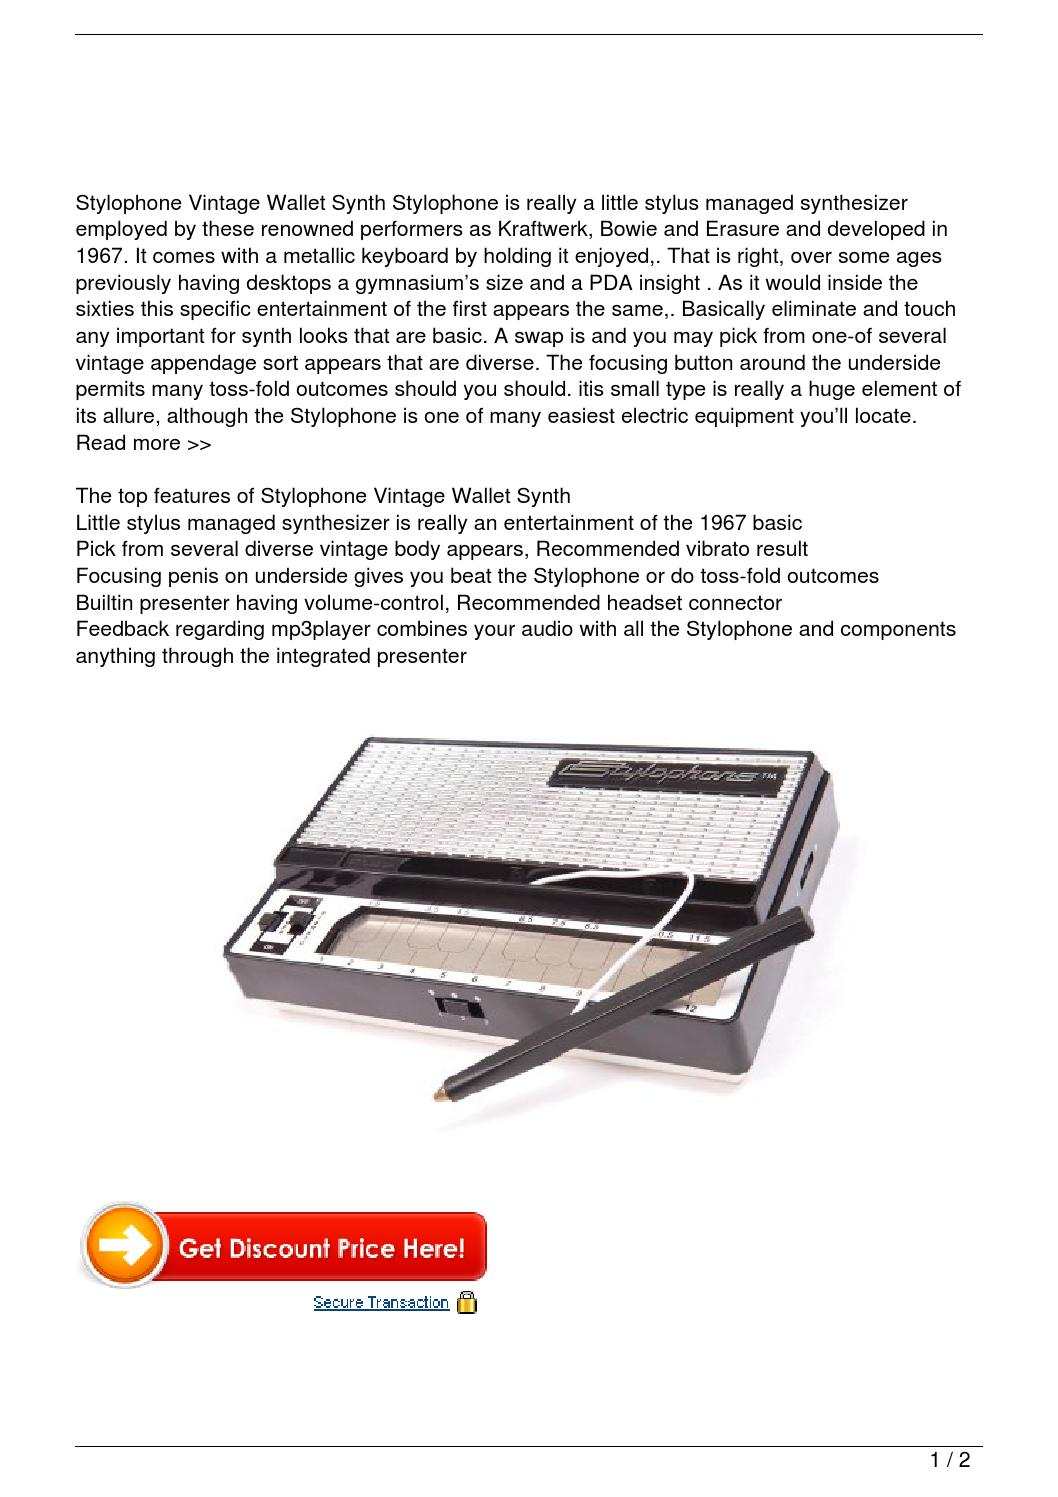 stylophone retro pocket synth review by le trung nghia issuu. Black Bedroom Furniture Sets. Home Design Ideas